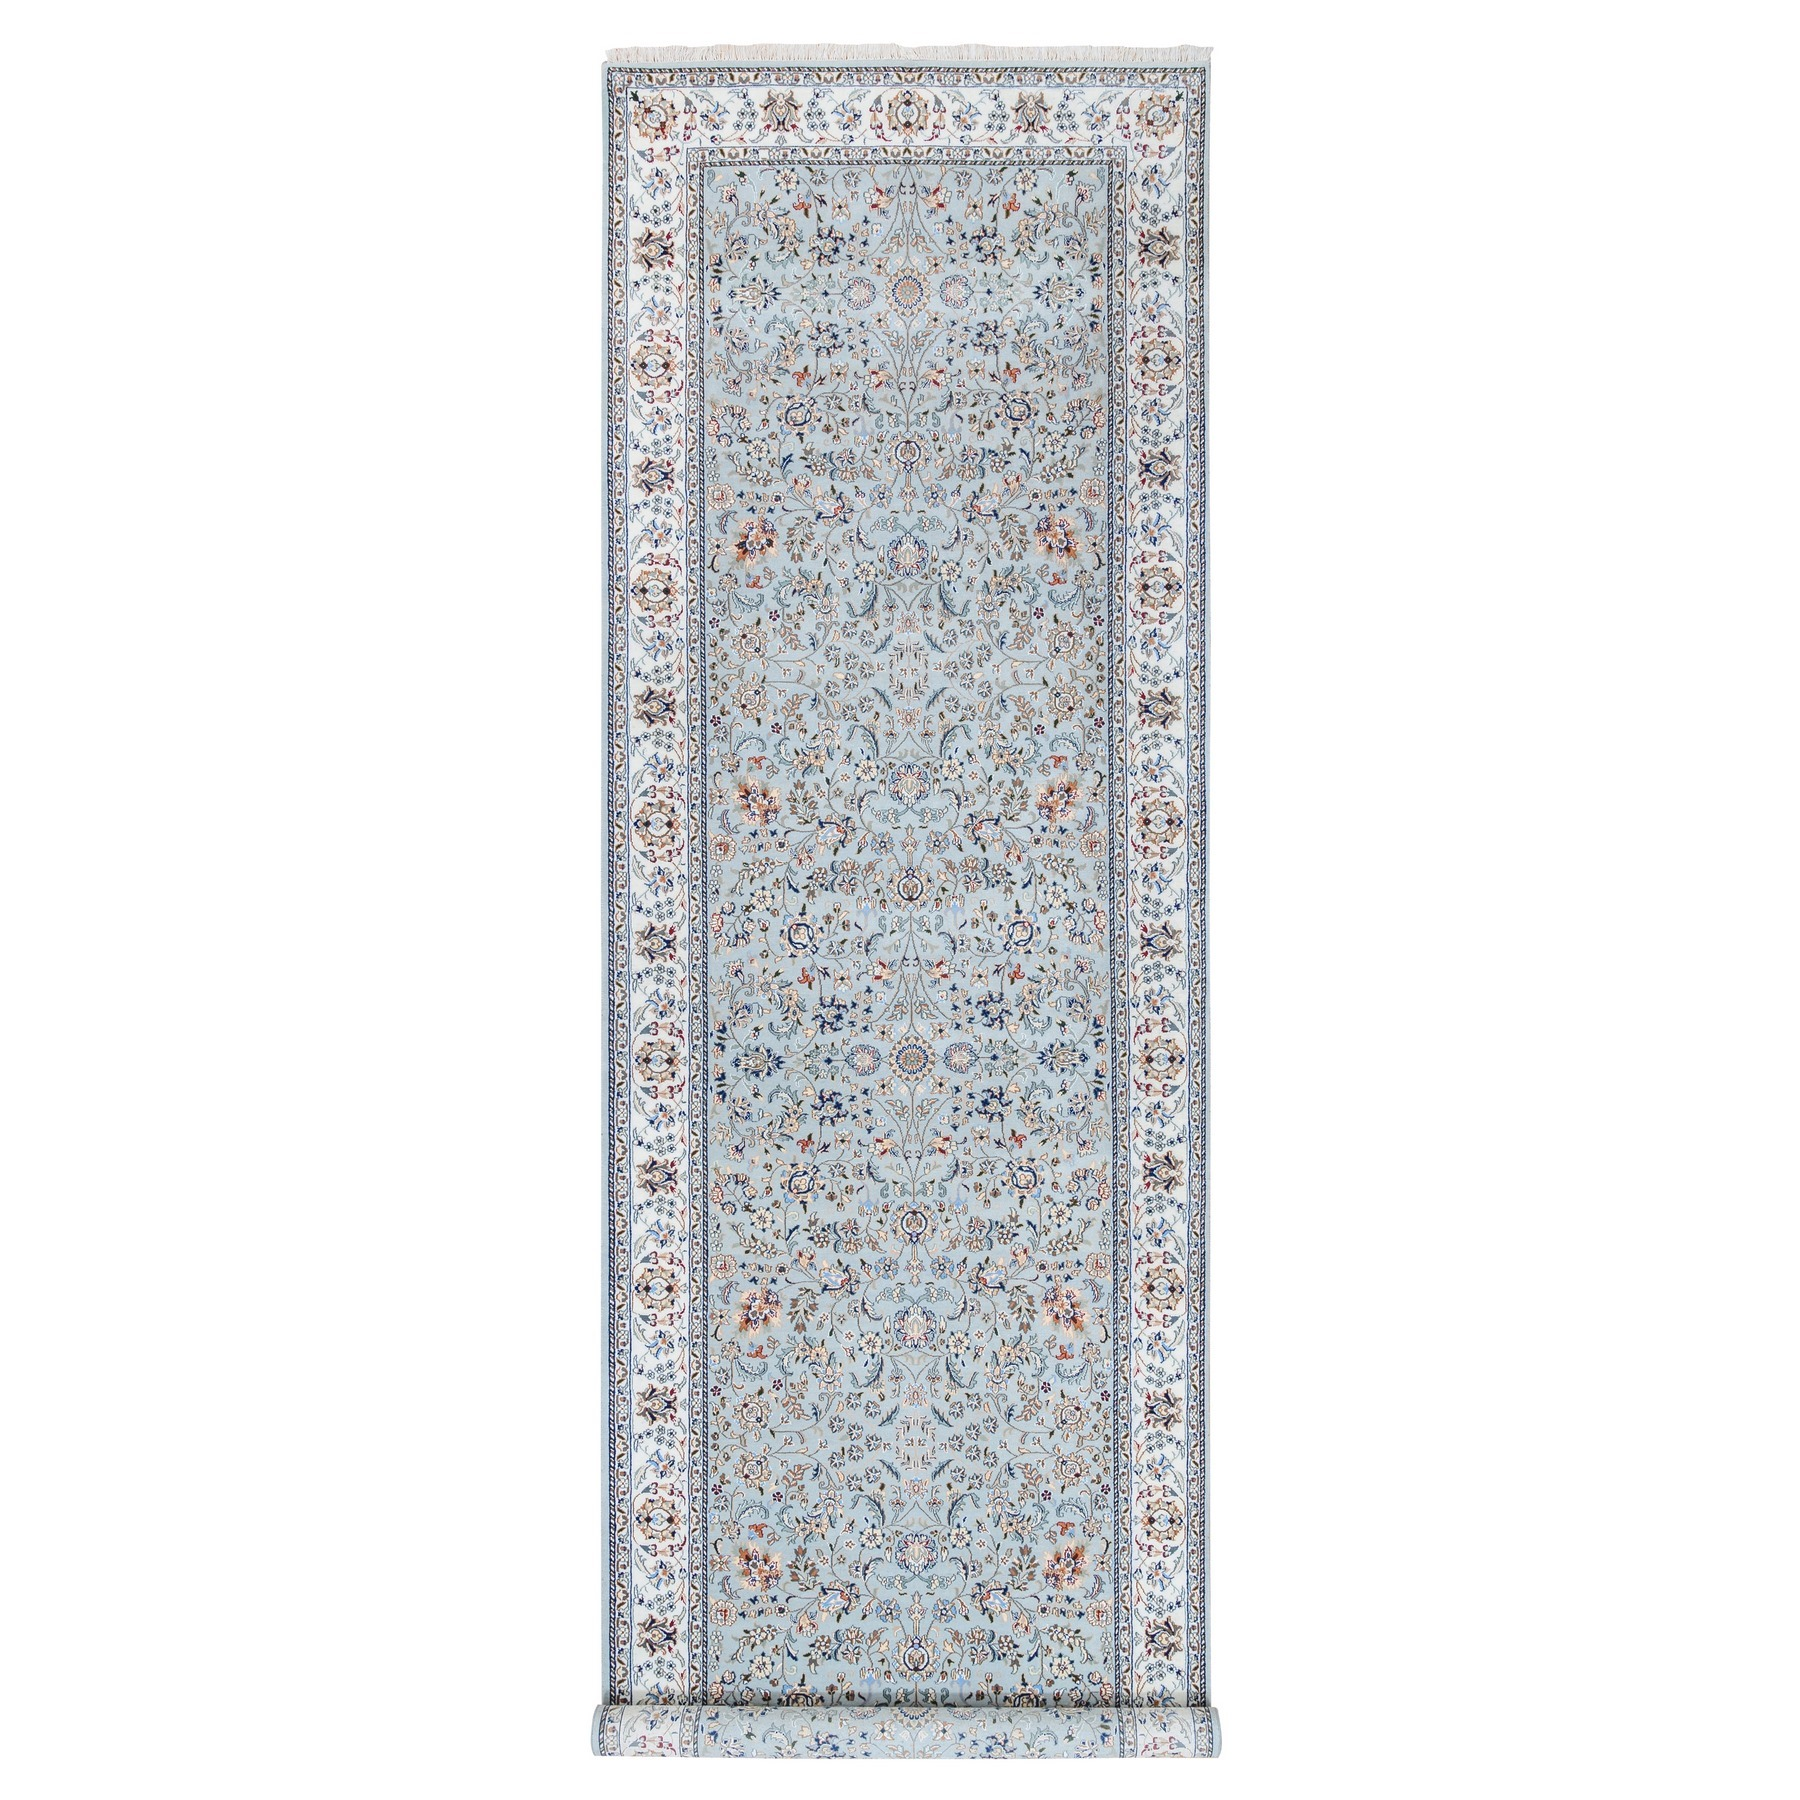 Pirniakan Collection Hand Stitched Grey Rug No: 1124694